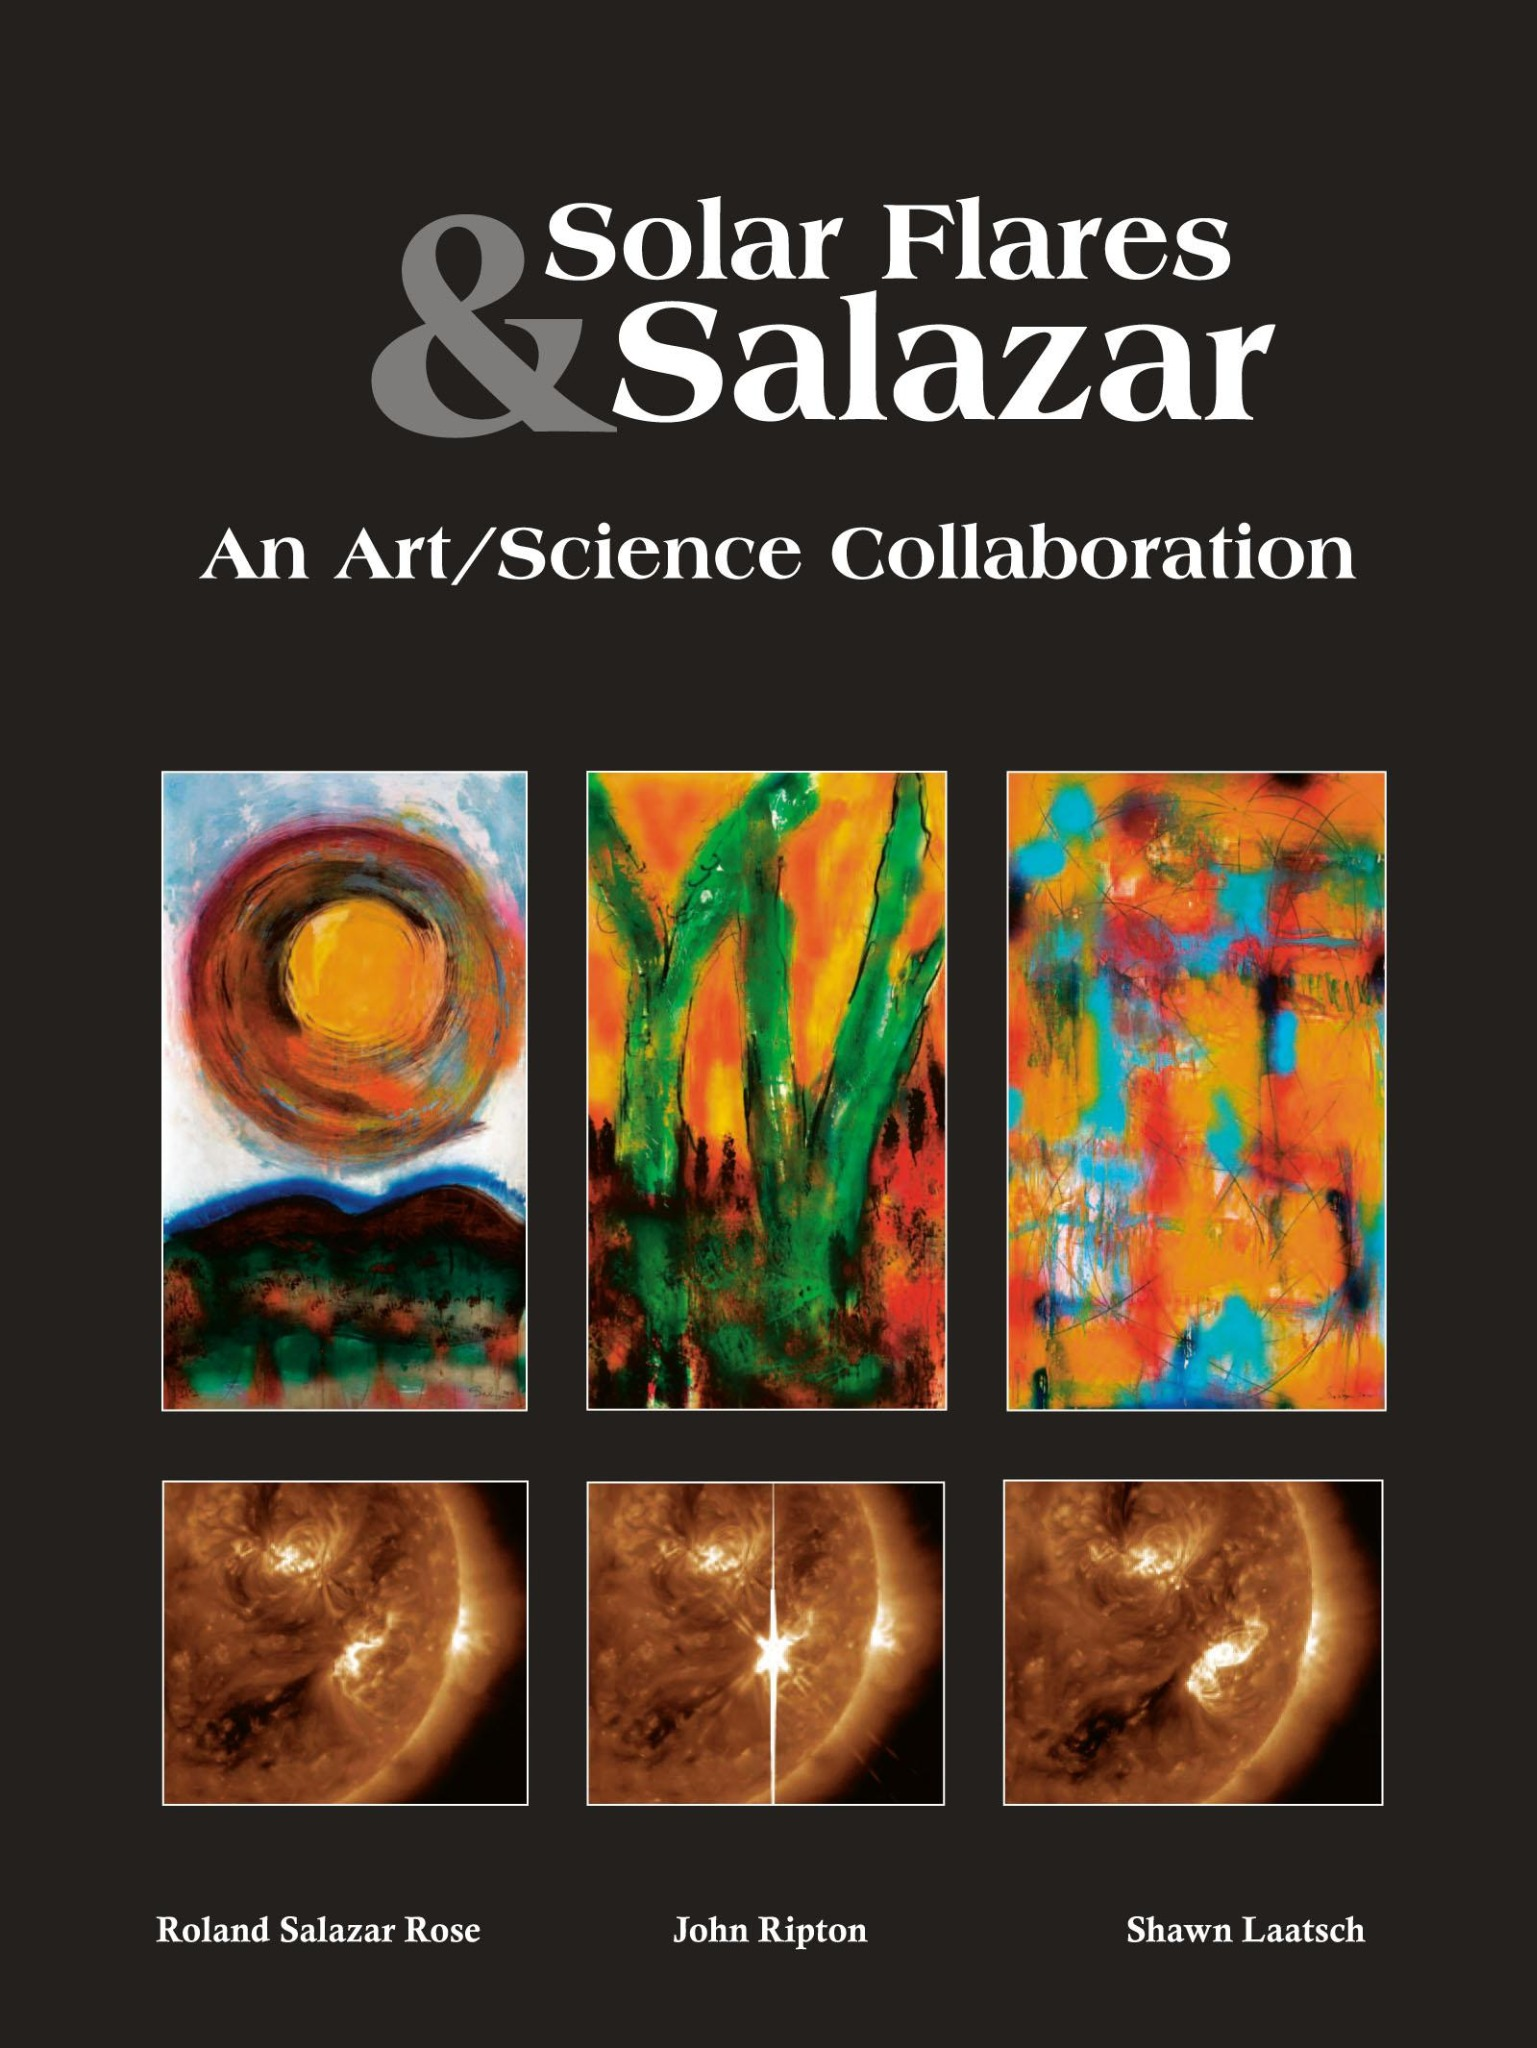 Solar Flares & Salazar: An Art/Science Collaborartion